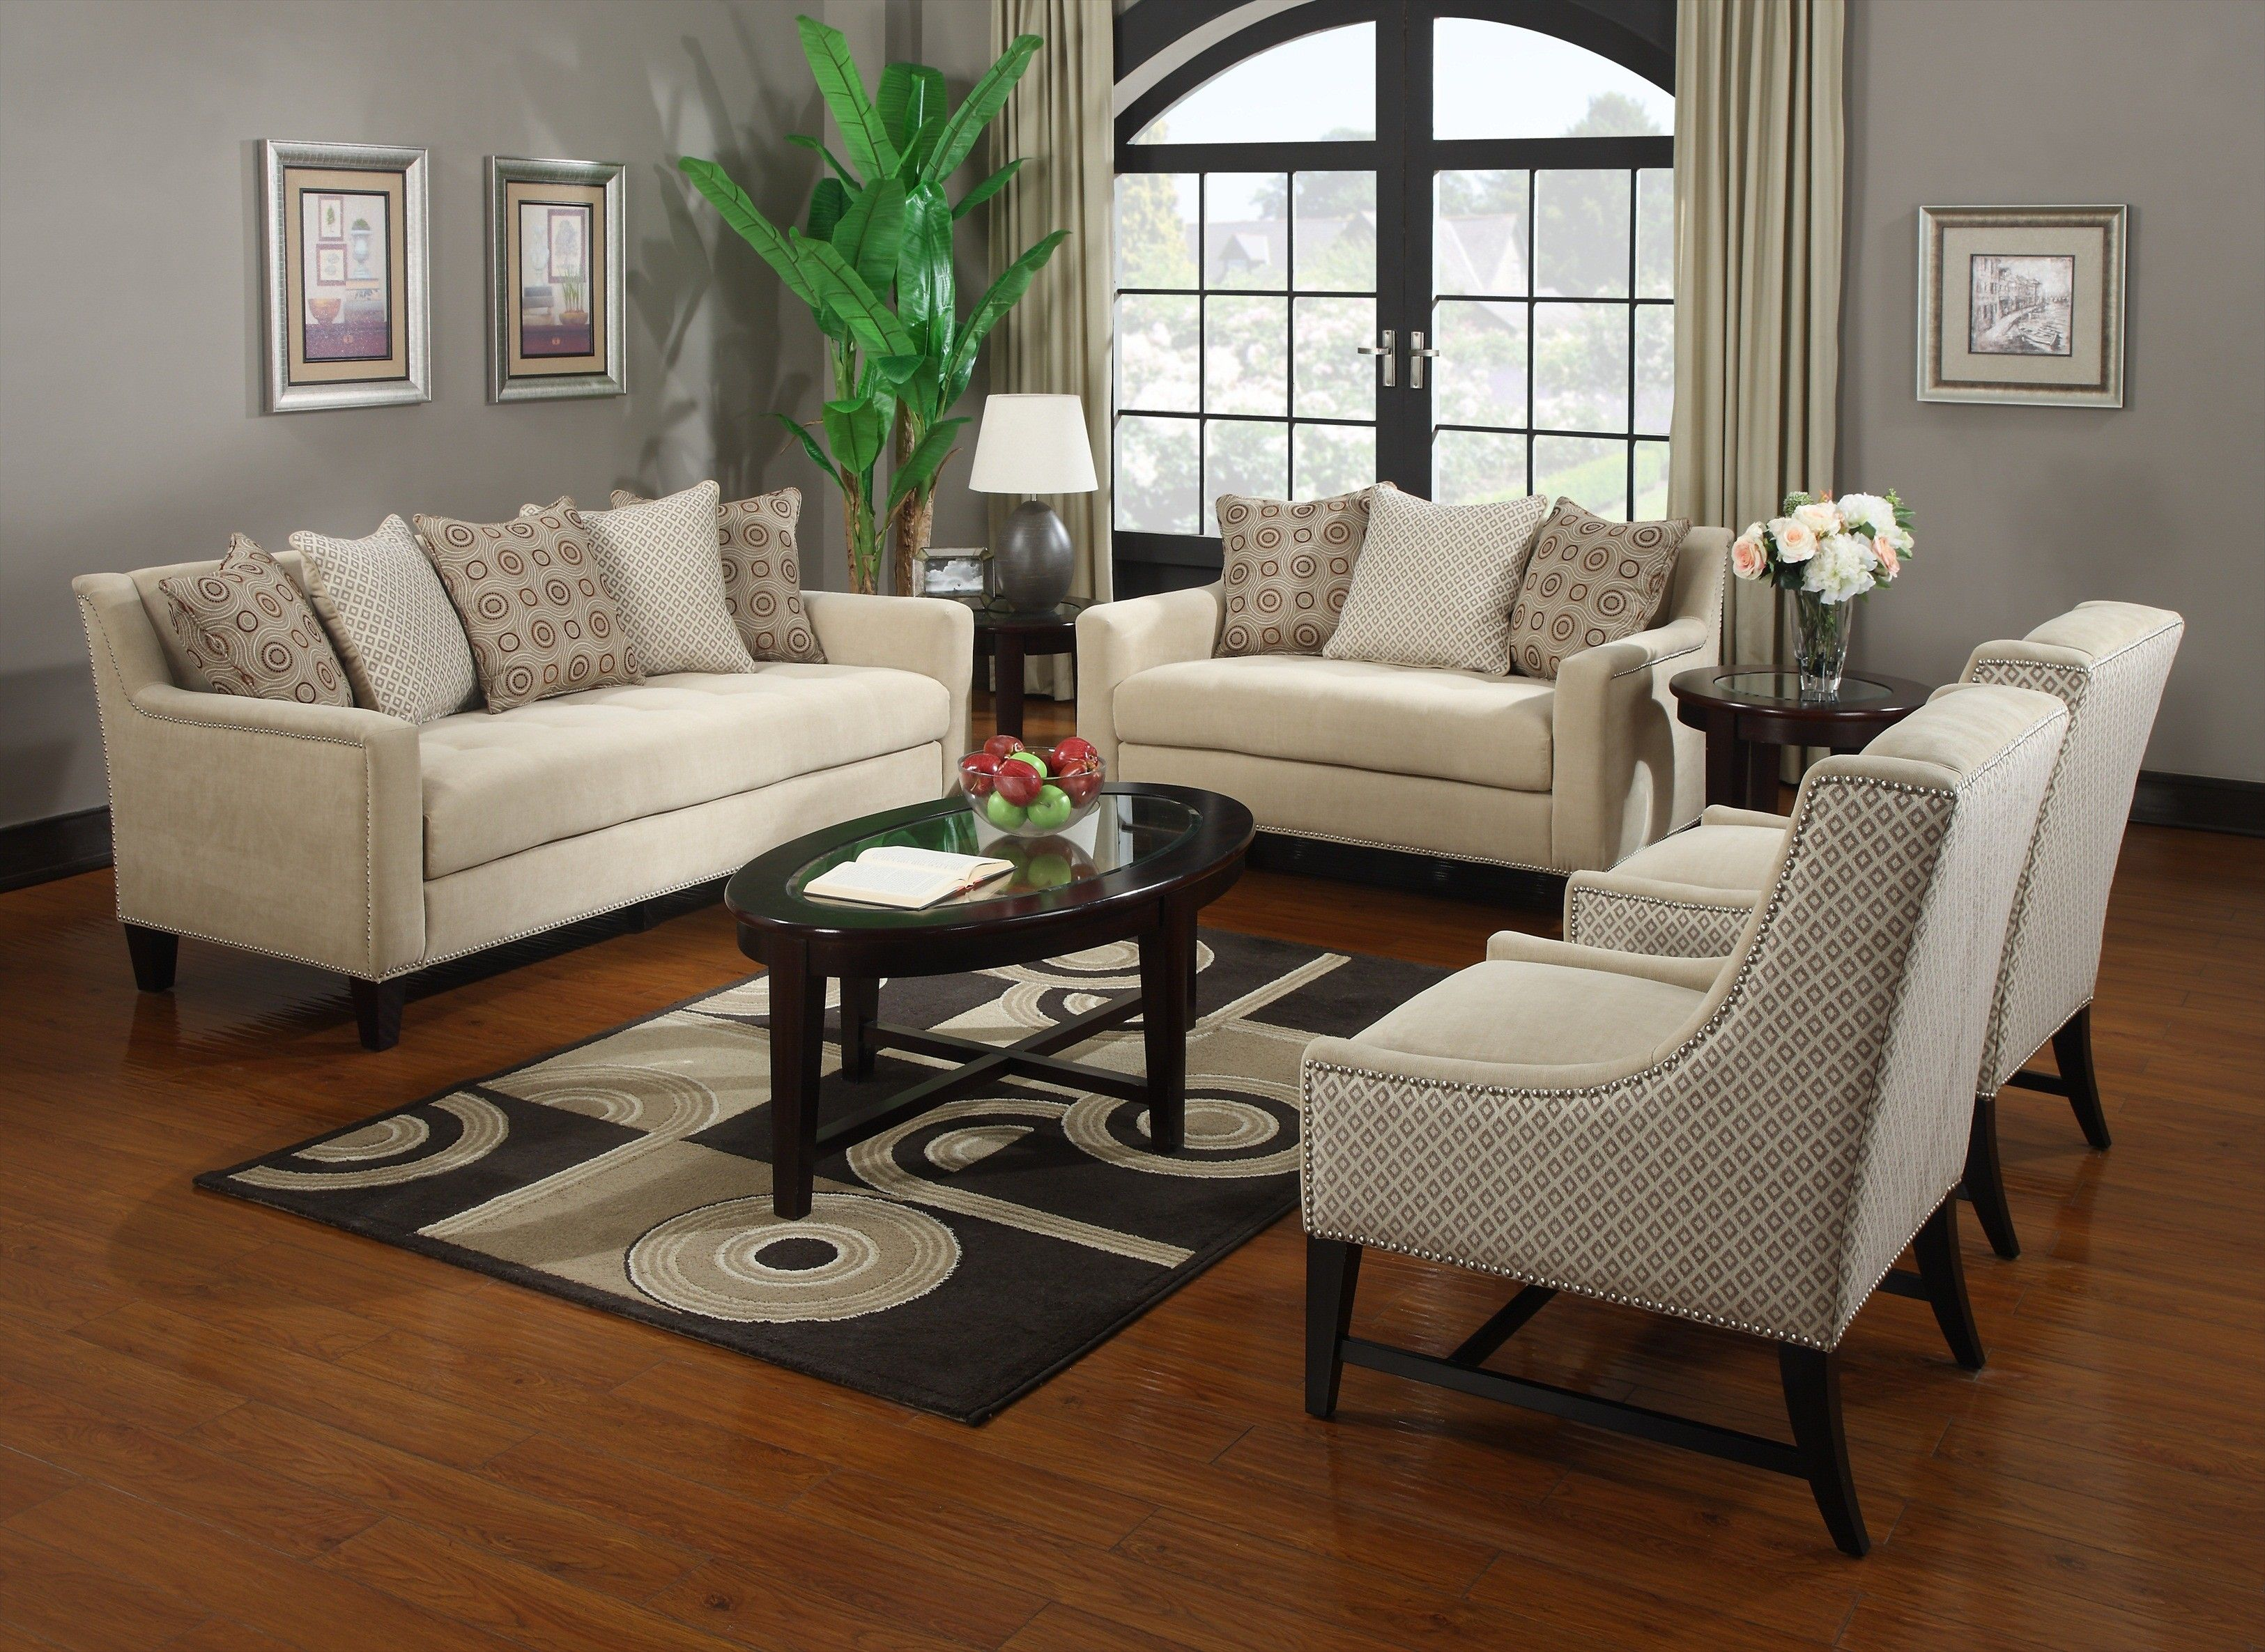 Image gallery transitional furniture for Transitional living room furniture ideas